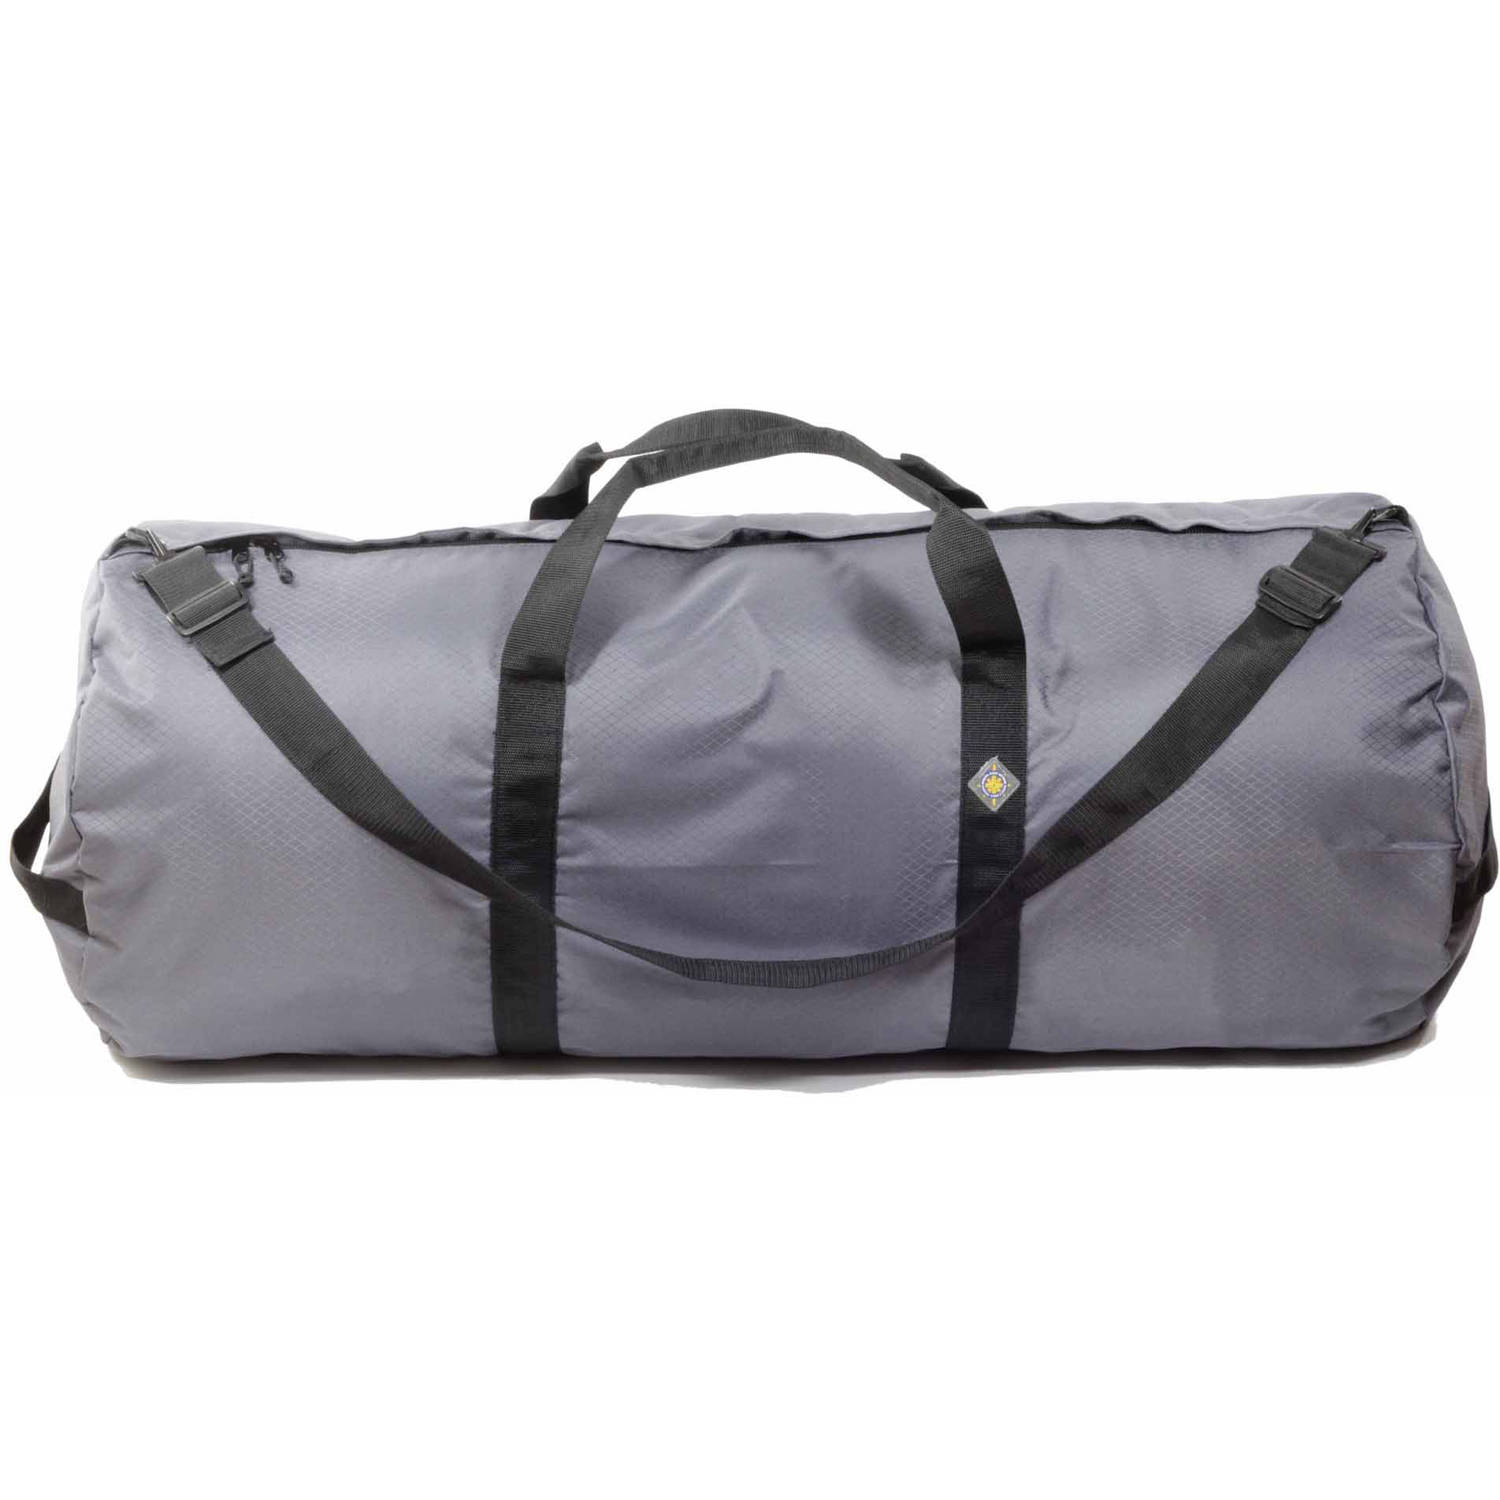 North Star SD 1842 Sport Duffle Bag, Steel Grey by Northstar Bags